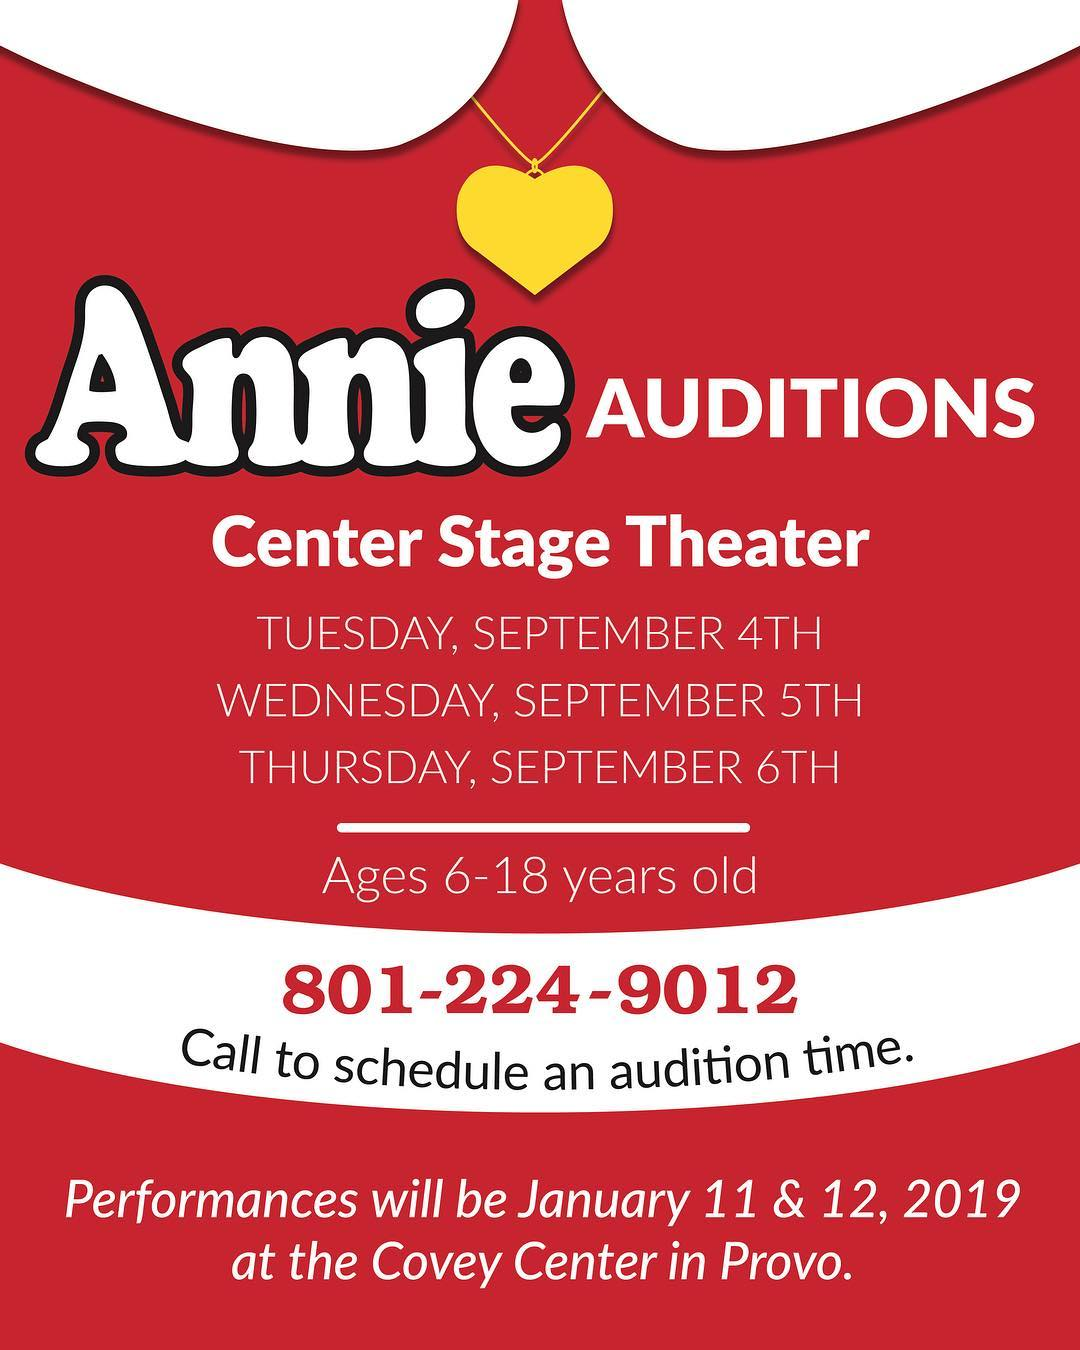 2018AnnieAuditions.jpg